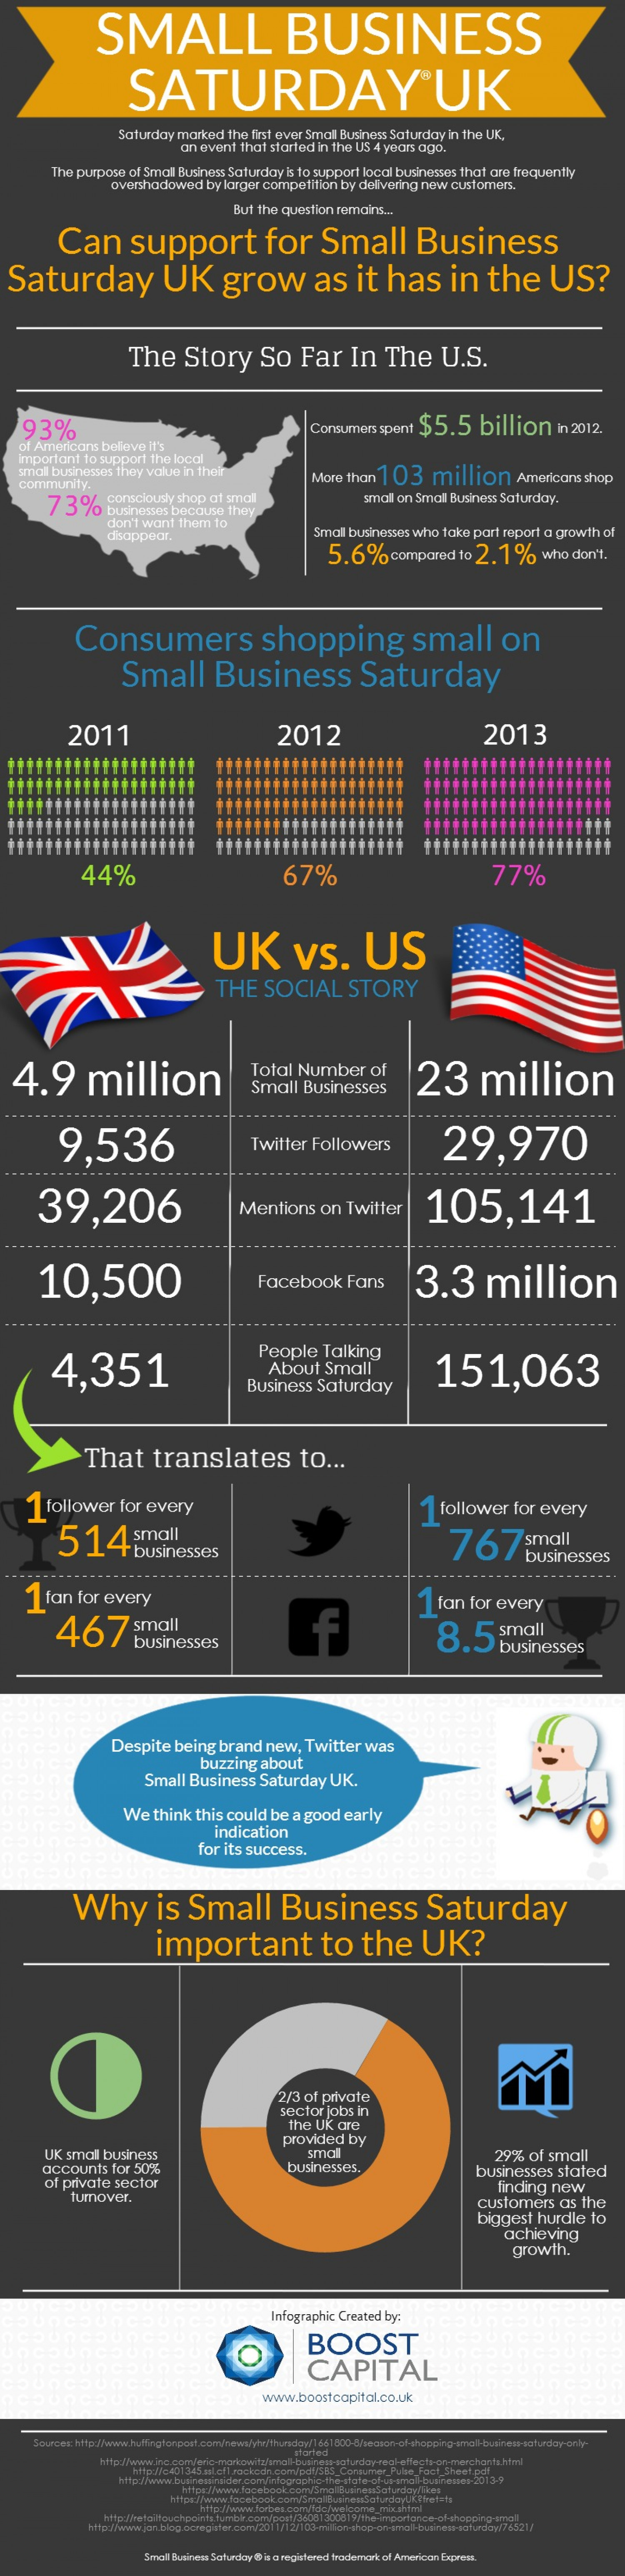 Small Business Saturday: UK vs. US Infographic